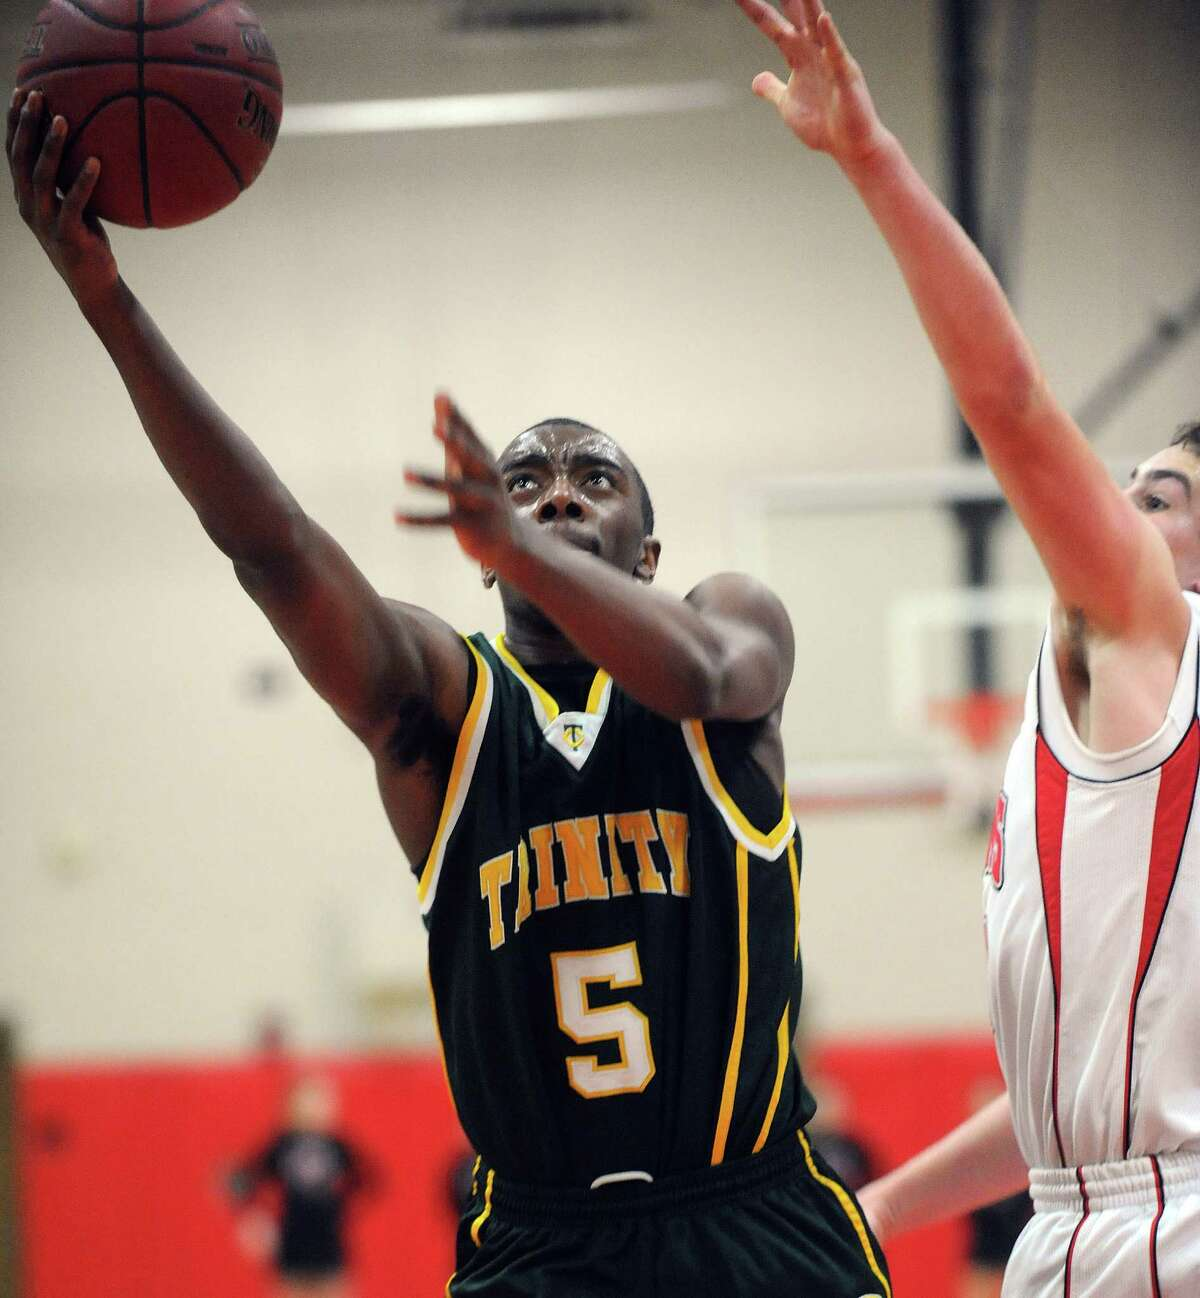 Trinity Catholic's Brandon Wheeler takes a shot during Friday's boys basketball game at New Canaan High School on January 25, 2013.